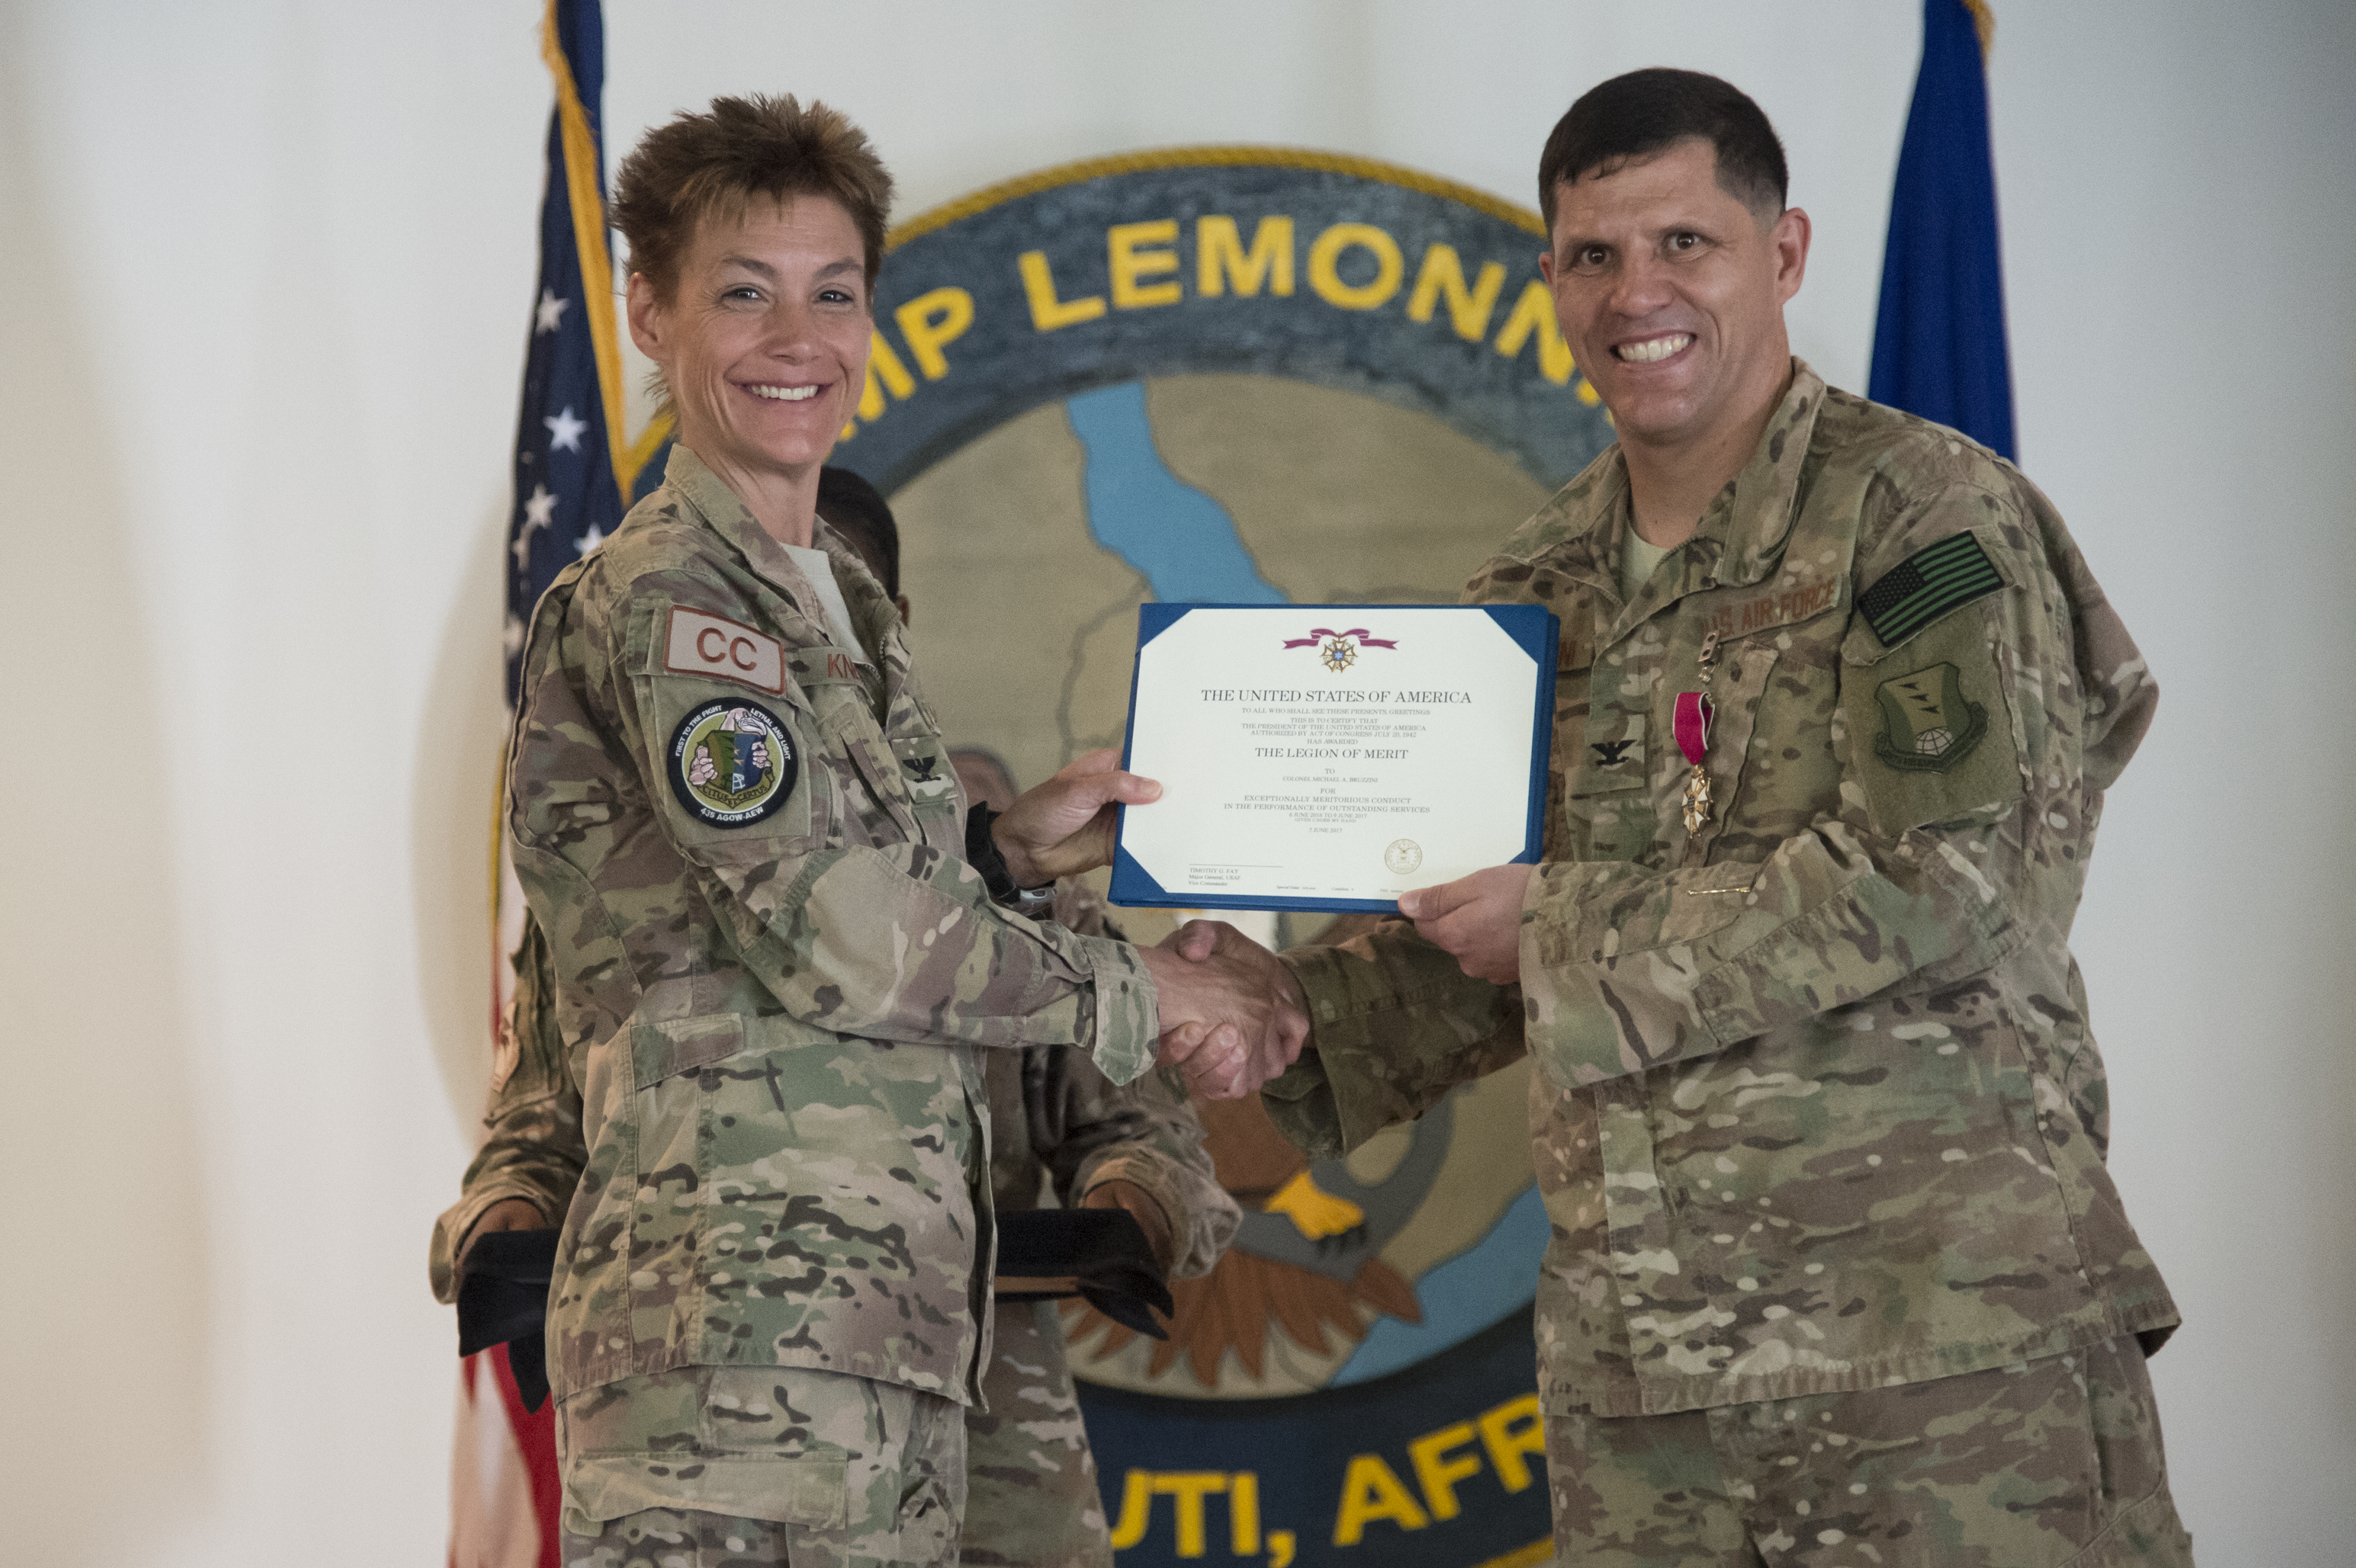 U.S. Air Force Col. Andra Kniep, 435th Air Expeditionary Wing commander, presents U.S. Air Force Col. Michael Bruzzini the Legion of Merit during the 449th AEG Change of Command ceremony June 9, 2017, at Camp Lemonnier, Djibouti. Cochran is relieving U.S. Air Force Col. Michael Bruzzini who has served as the 449th AEG Commander since June 6, 2016. The Legion of Merit is presented for exceptional meritorious conduct in the performance of outstanding services. (U.S. Air National Guard Photo by Tech. Sgt. Joe Harwood)